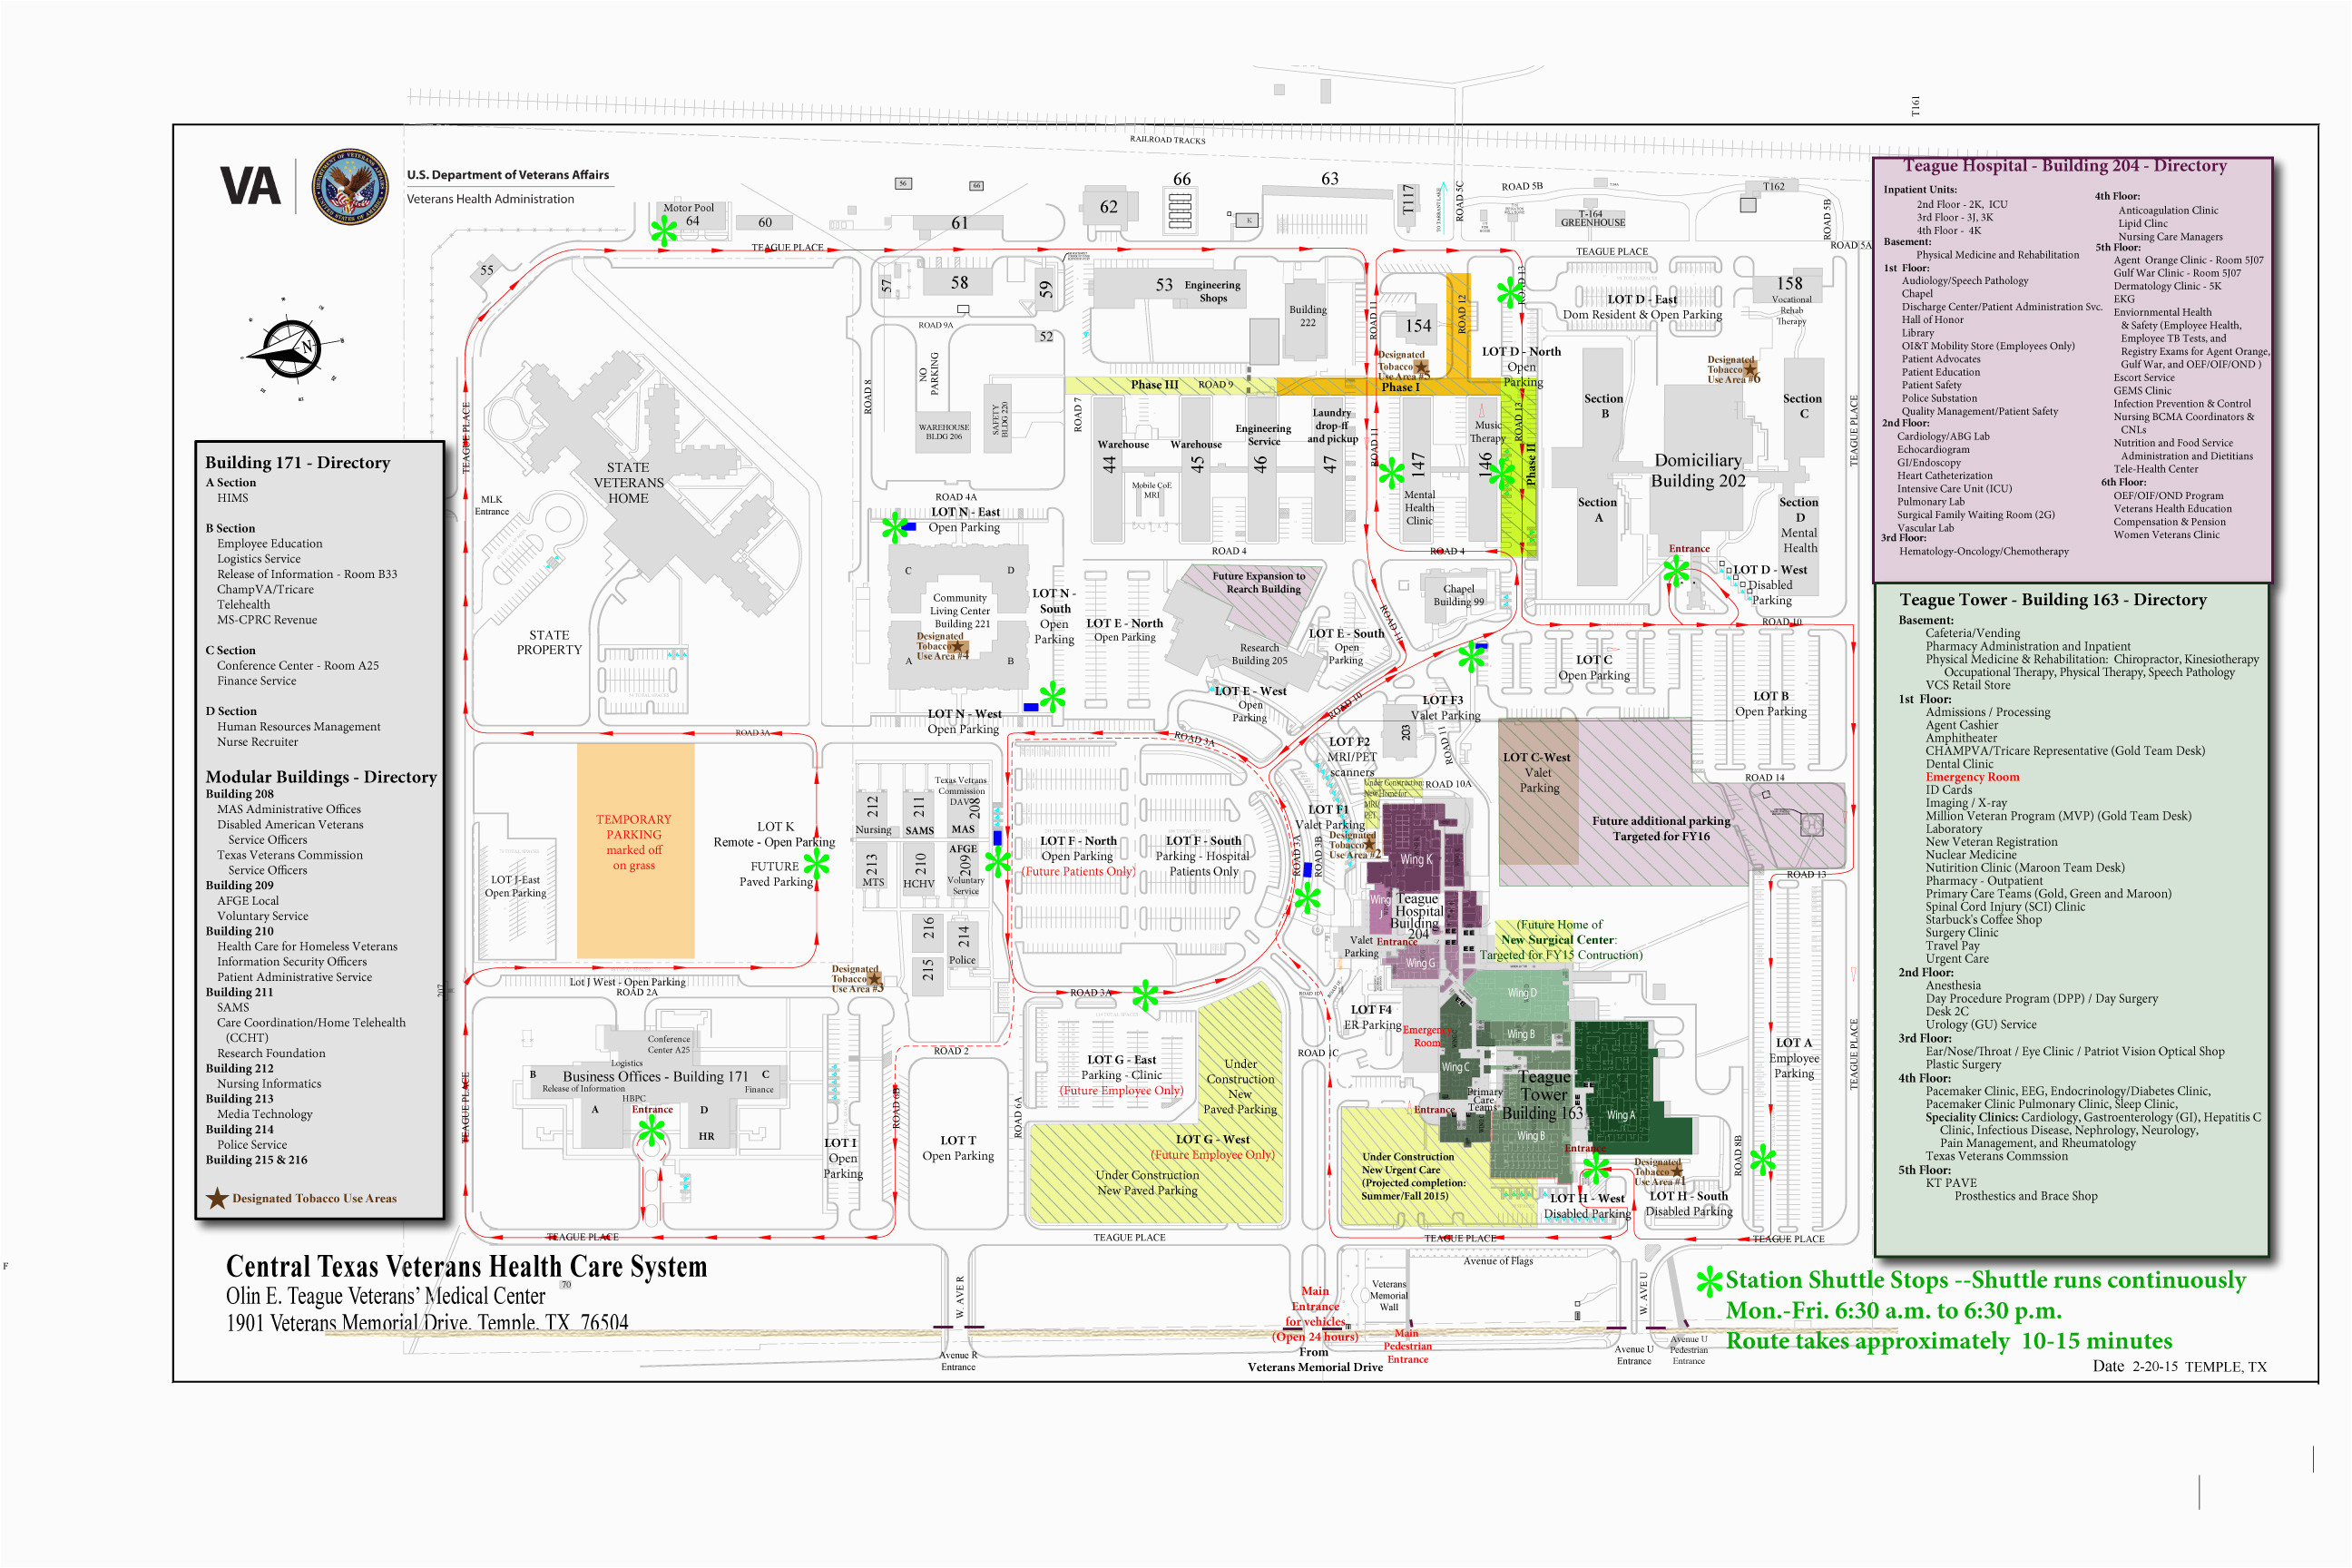 facility maps central texas veterans health care system